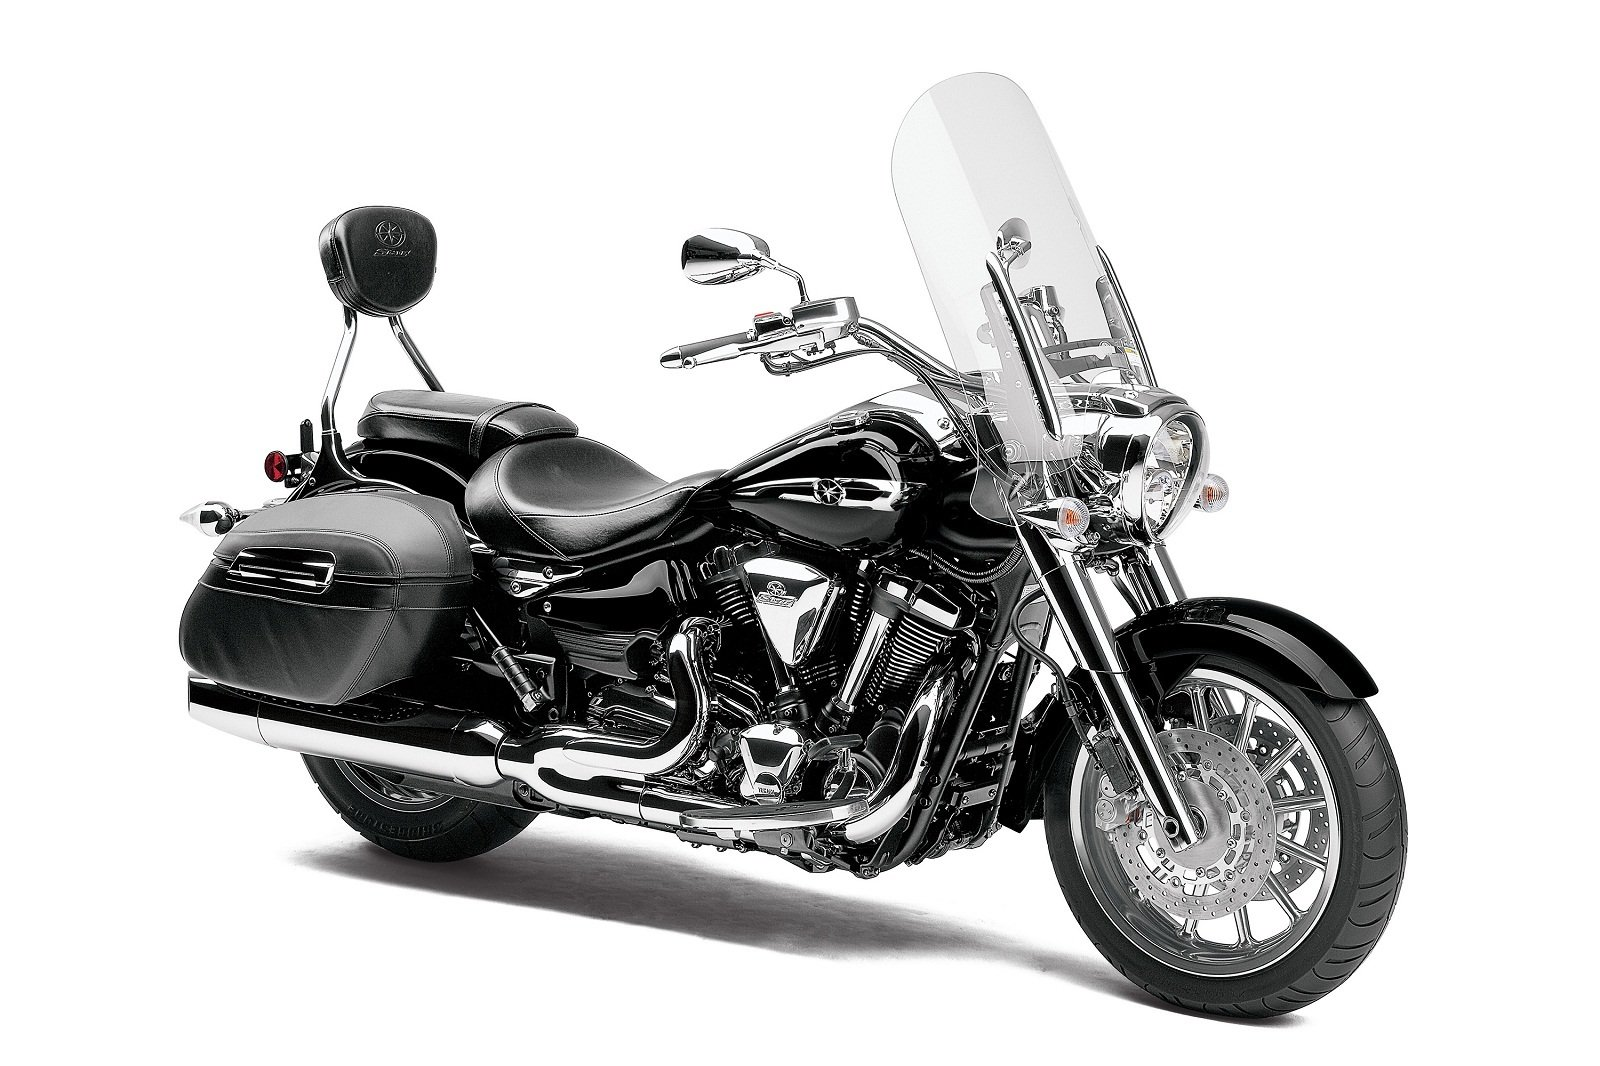 2012 yamaha stratoliner s review top speed for 2006 yamaha stratoliner review